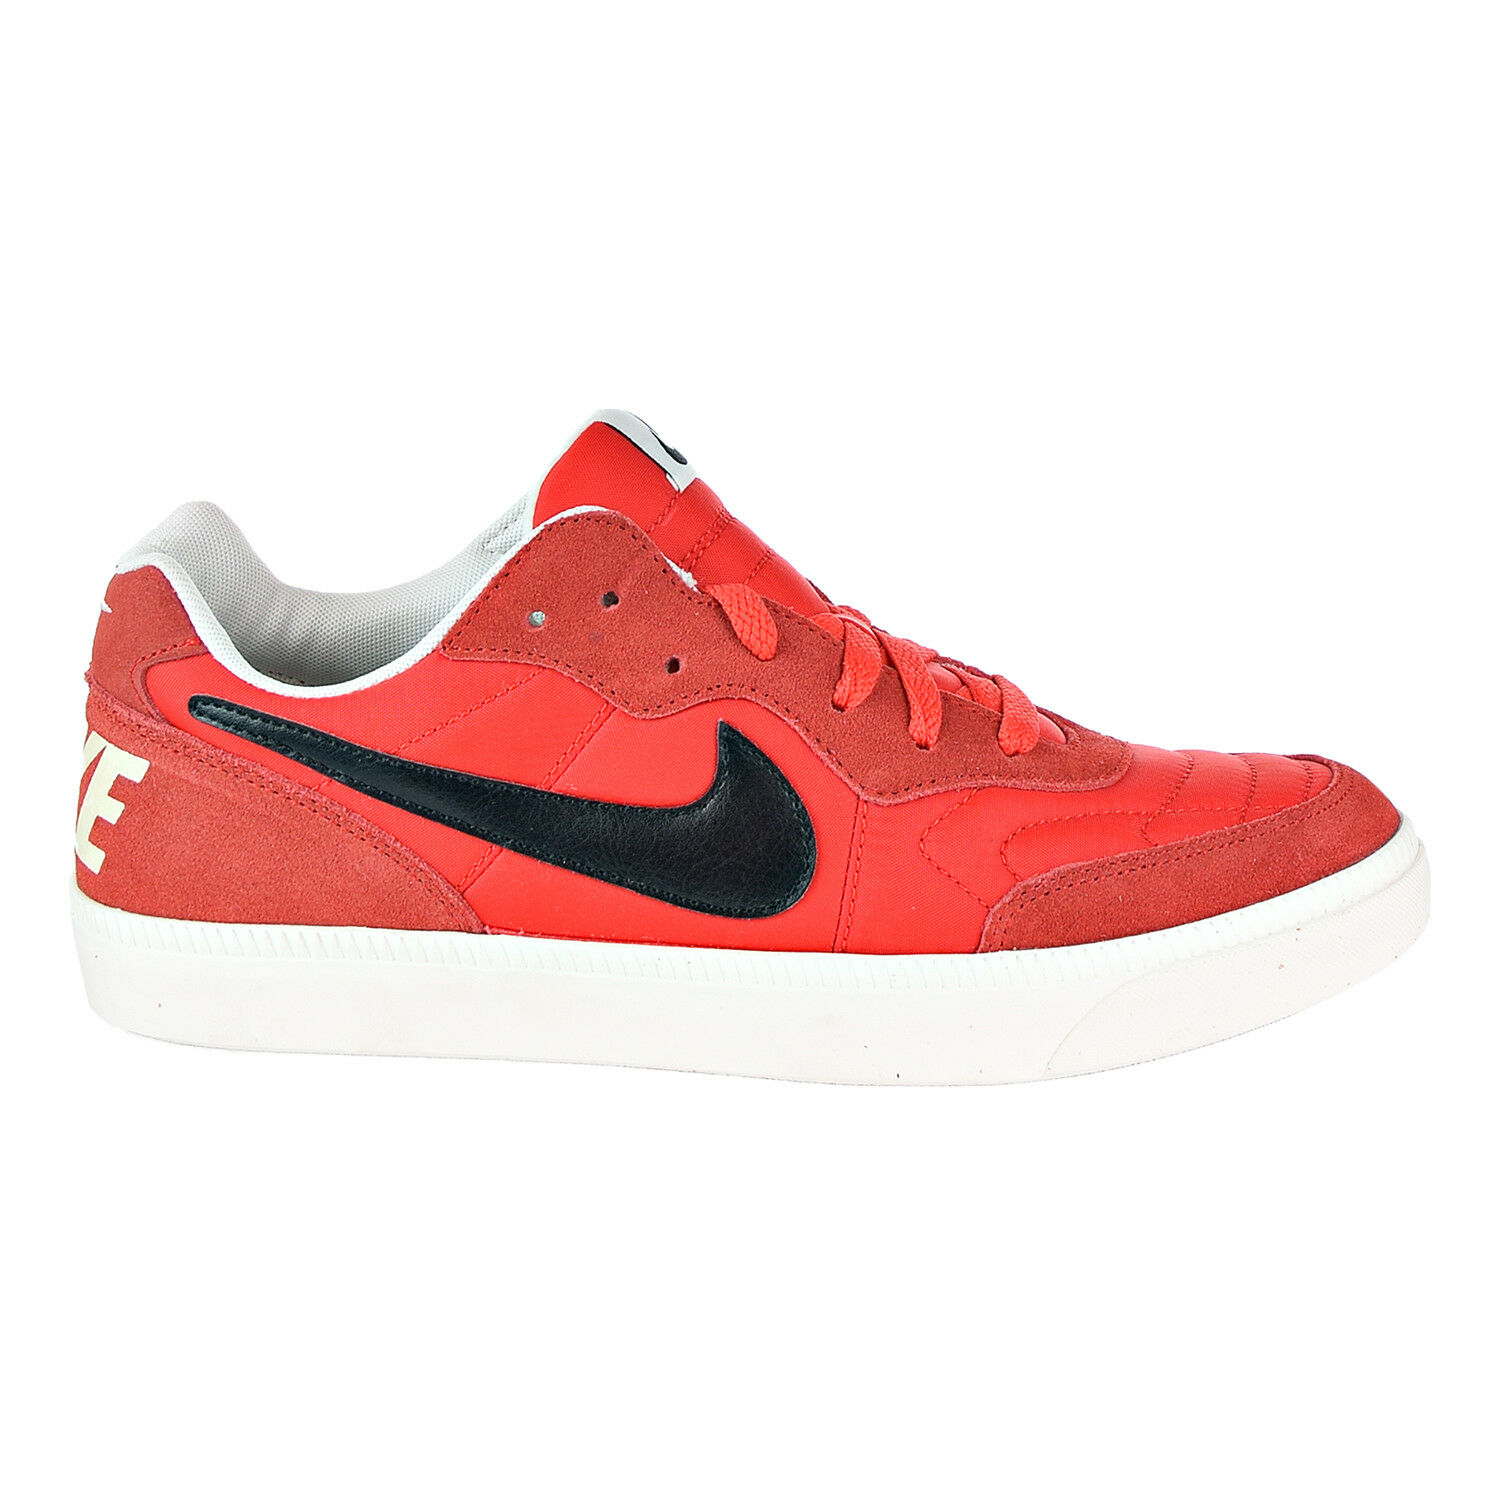 Nike NSW Tiempo Trainer Uomo  Shoes Challenge Red 644843-662